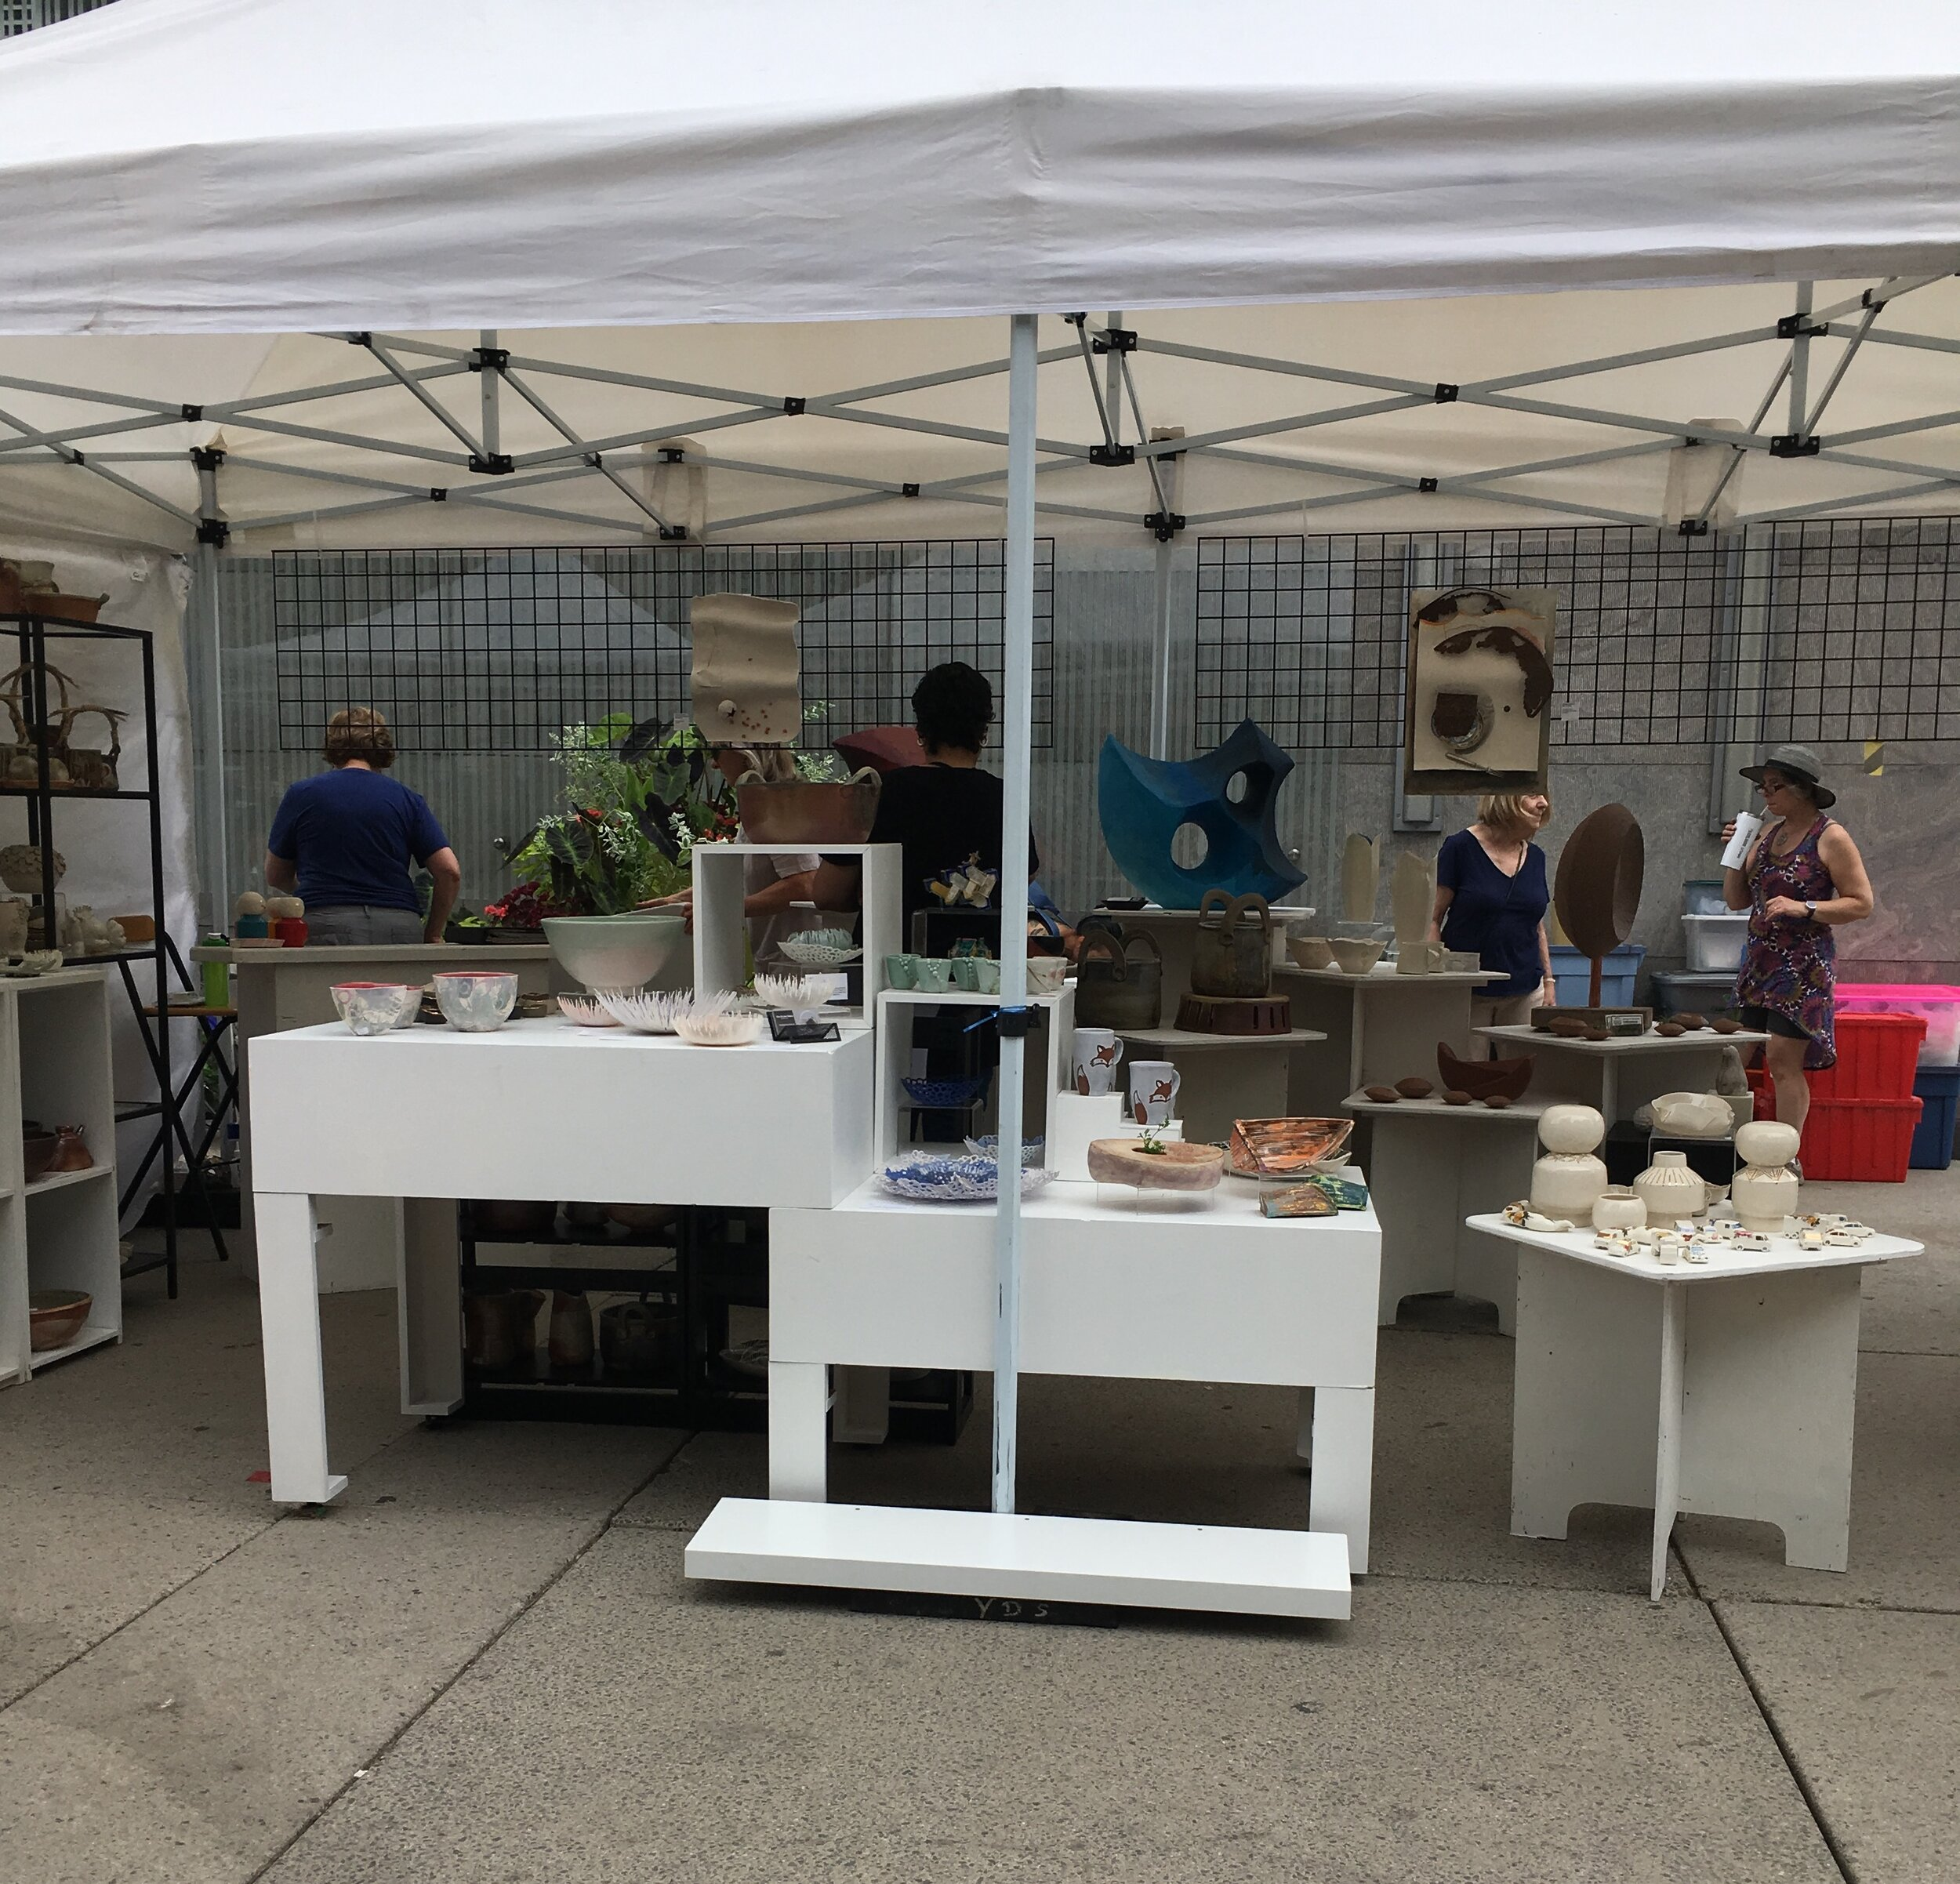 Toronto Potters tent set up for TOAF 2019 featuring the work of 11 potters.